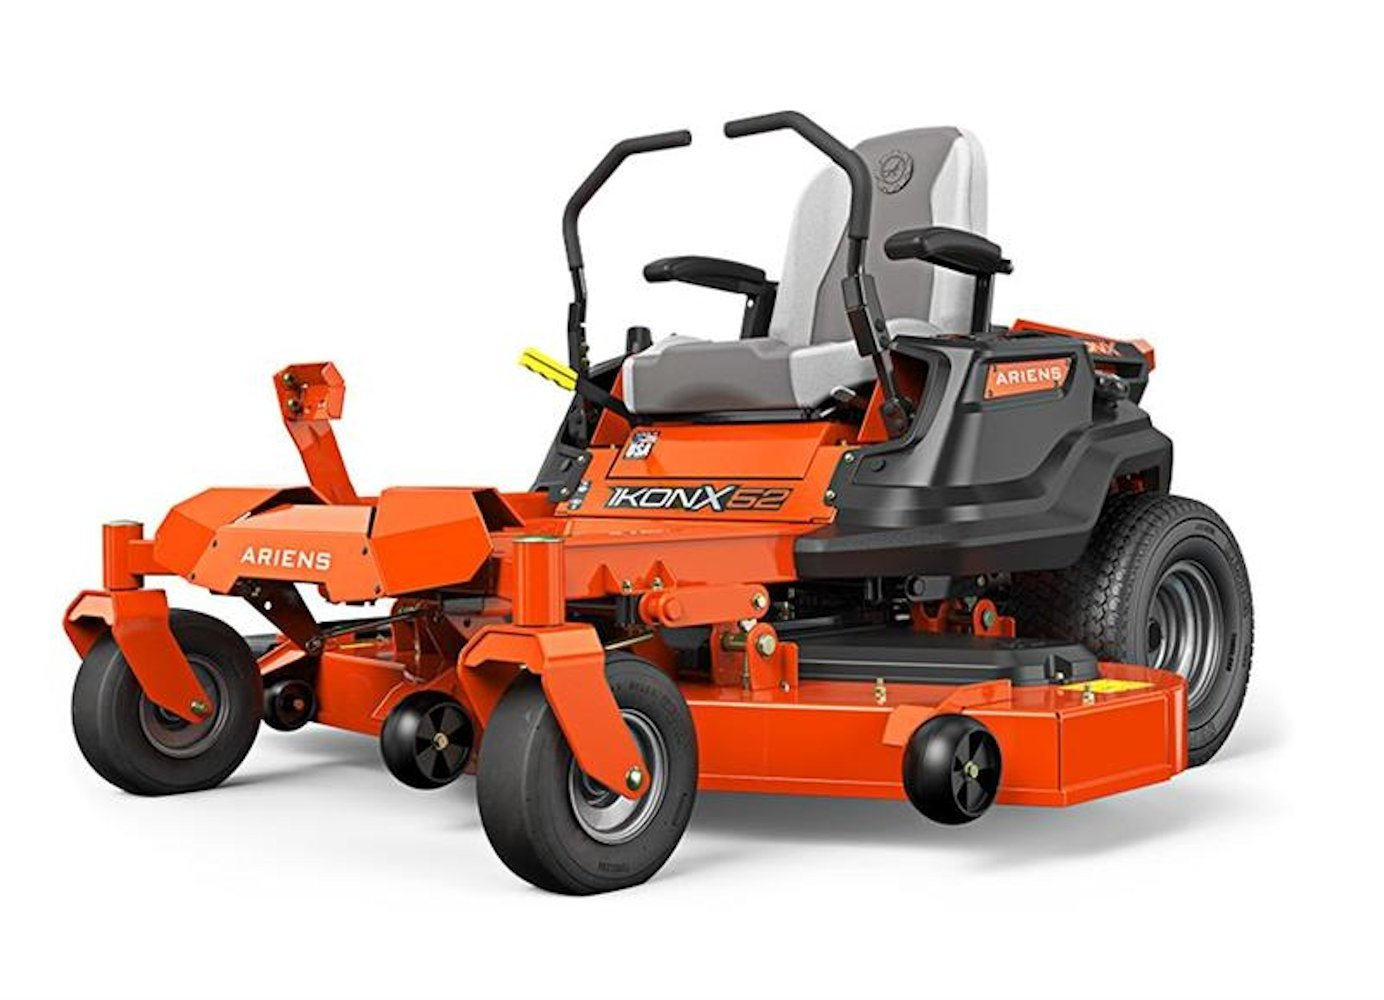 1. Ariens 915223 IKON-X 52 FR691 Series - Best Everyday Zero Turn Mower